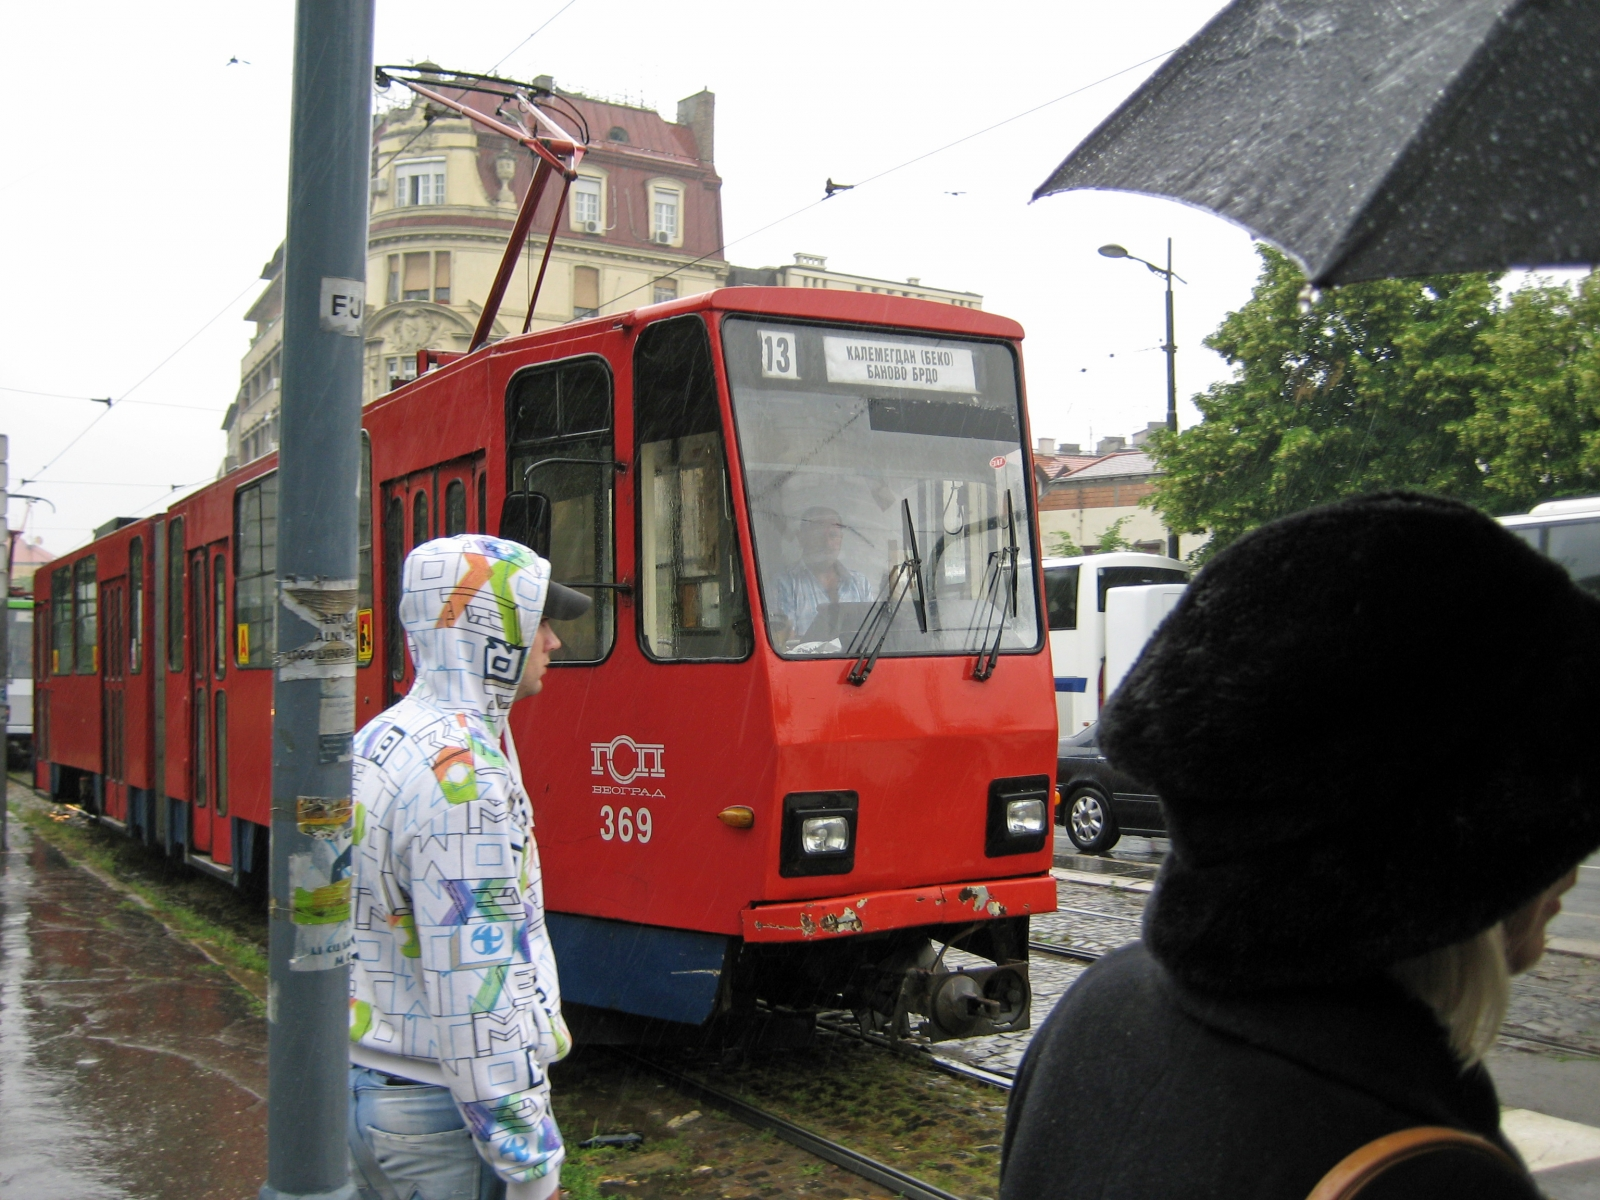 Light rail in Belgrade, Serbia